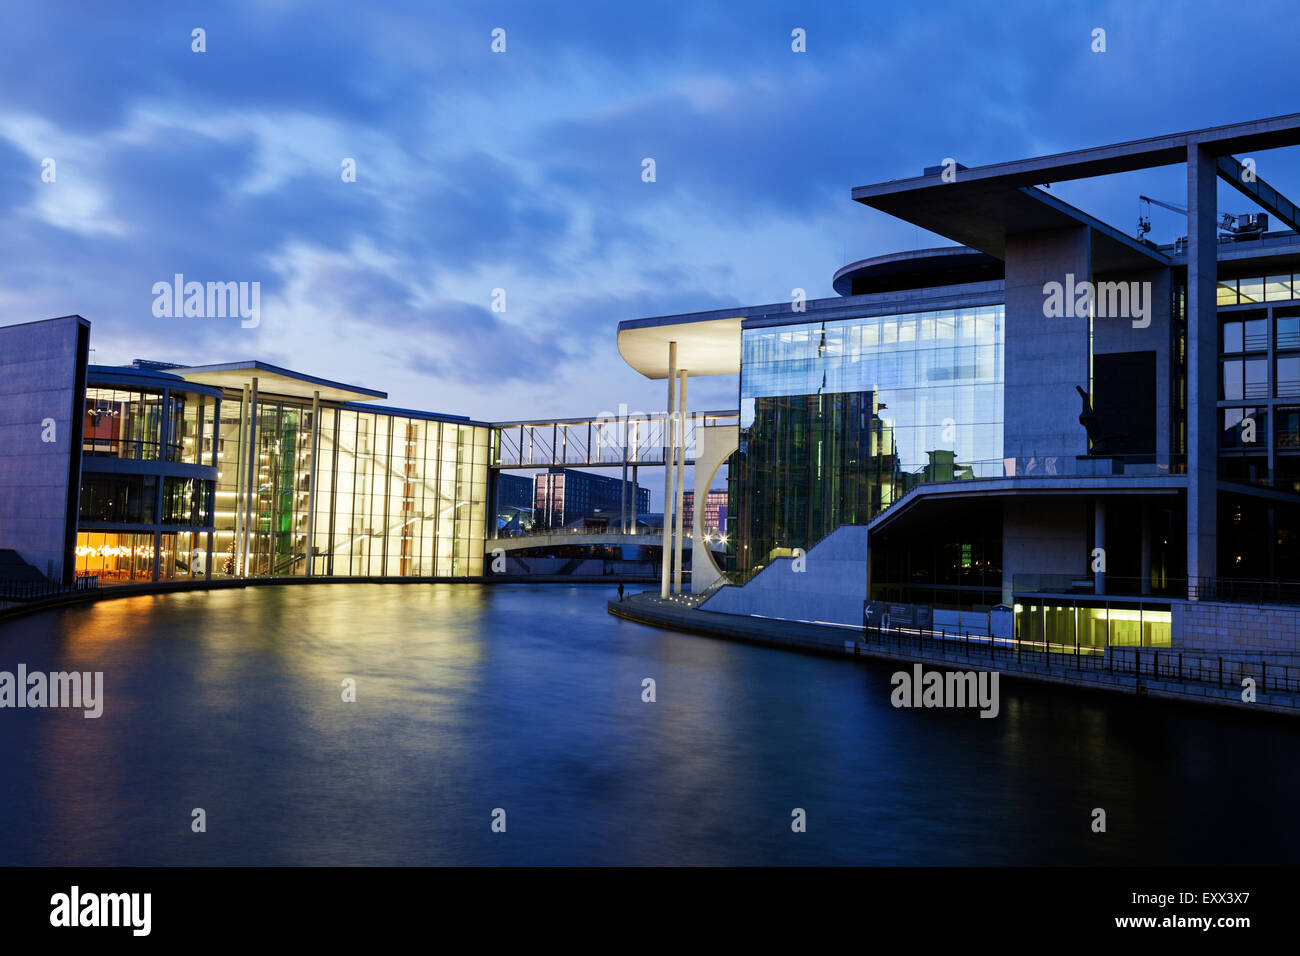 Federal Parliament offices illuminated at dusk - Stock Image